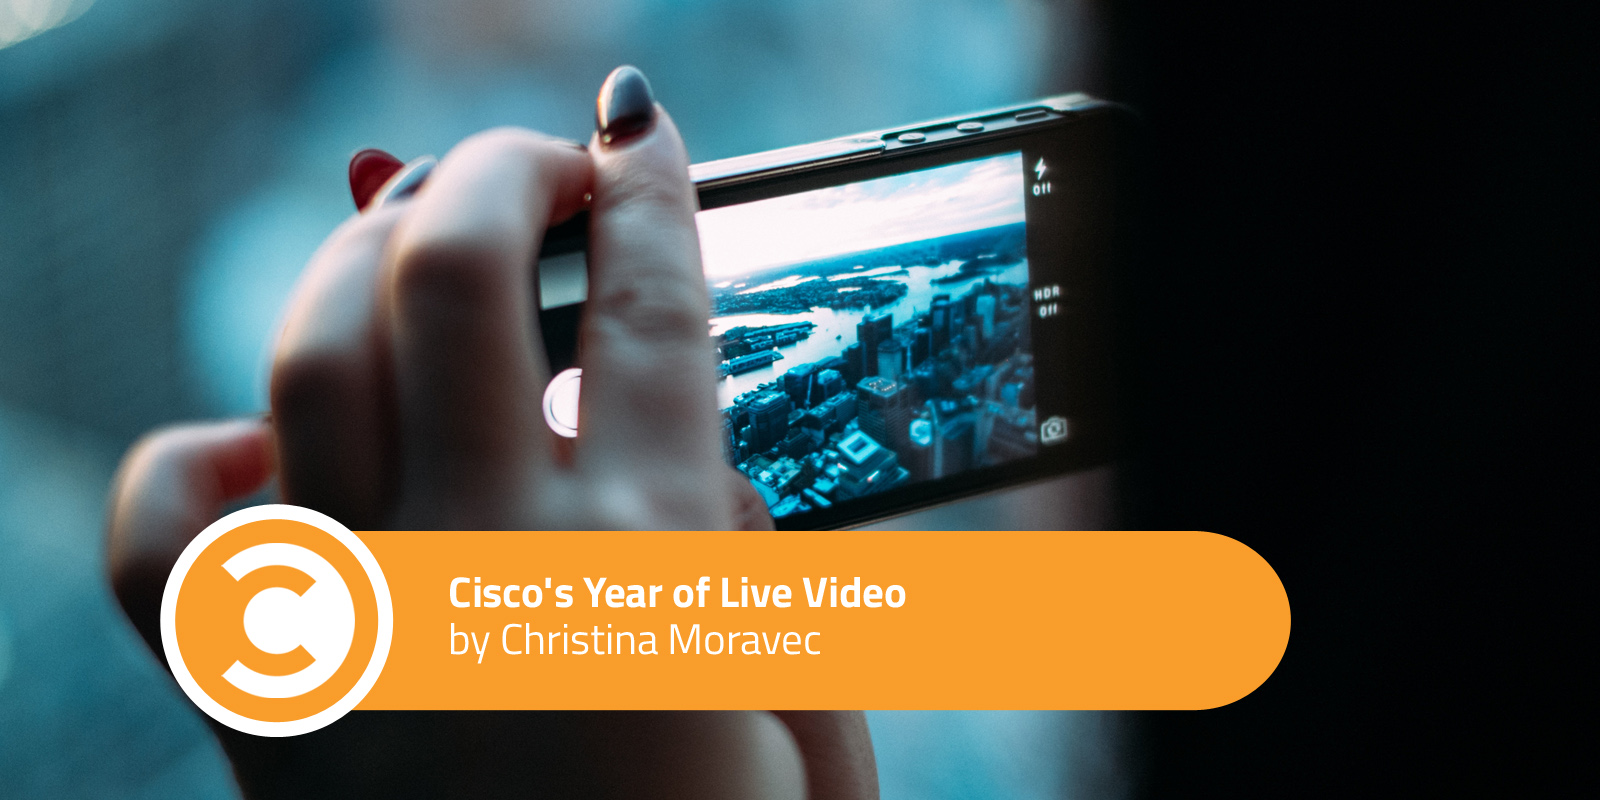 Cisco's Year of Live Video